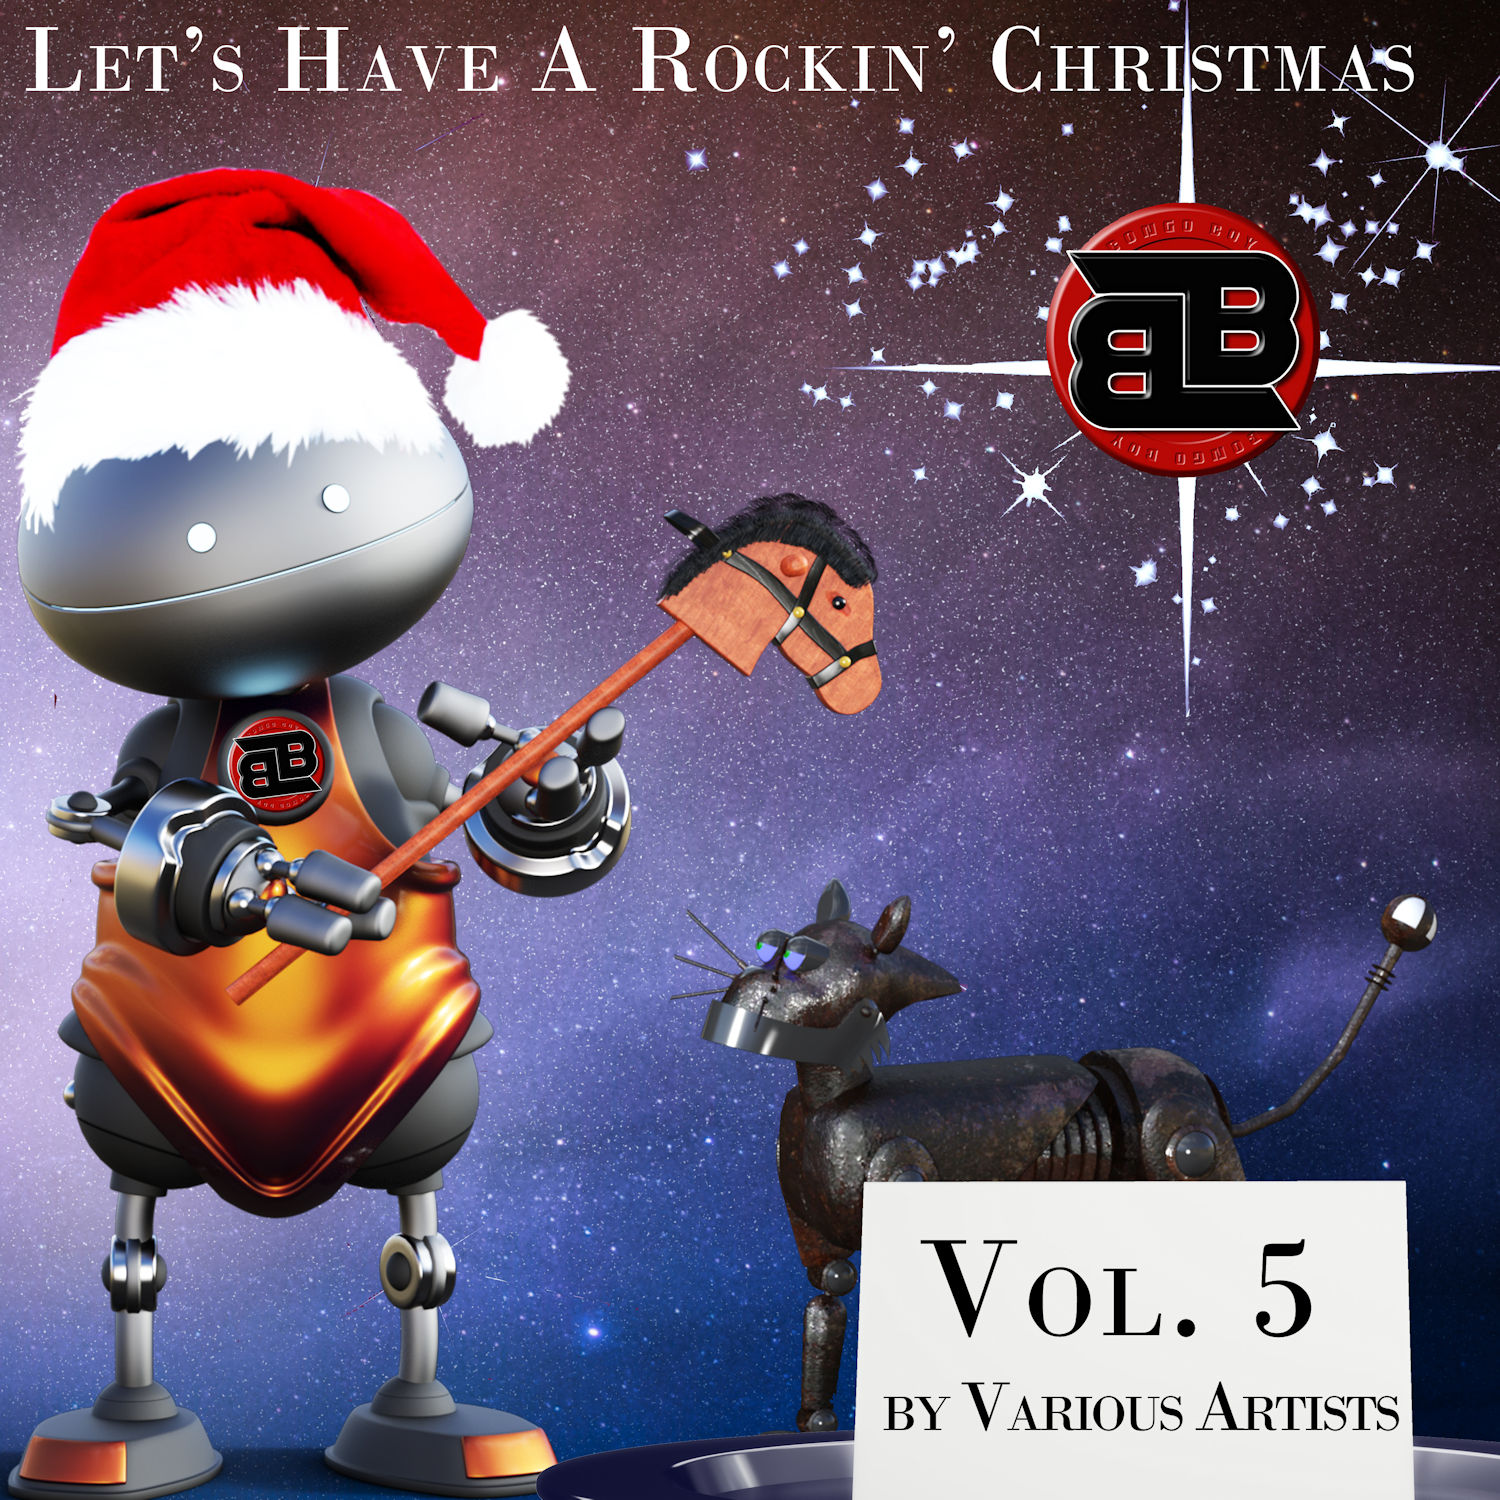 Vol 5 Let's Have A Rockin Christmas | The Holiday Album by Various Artists